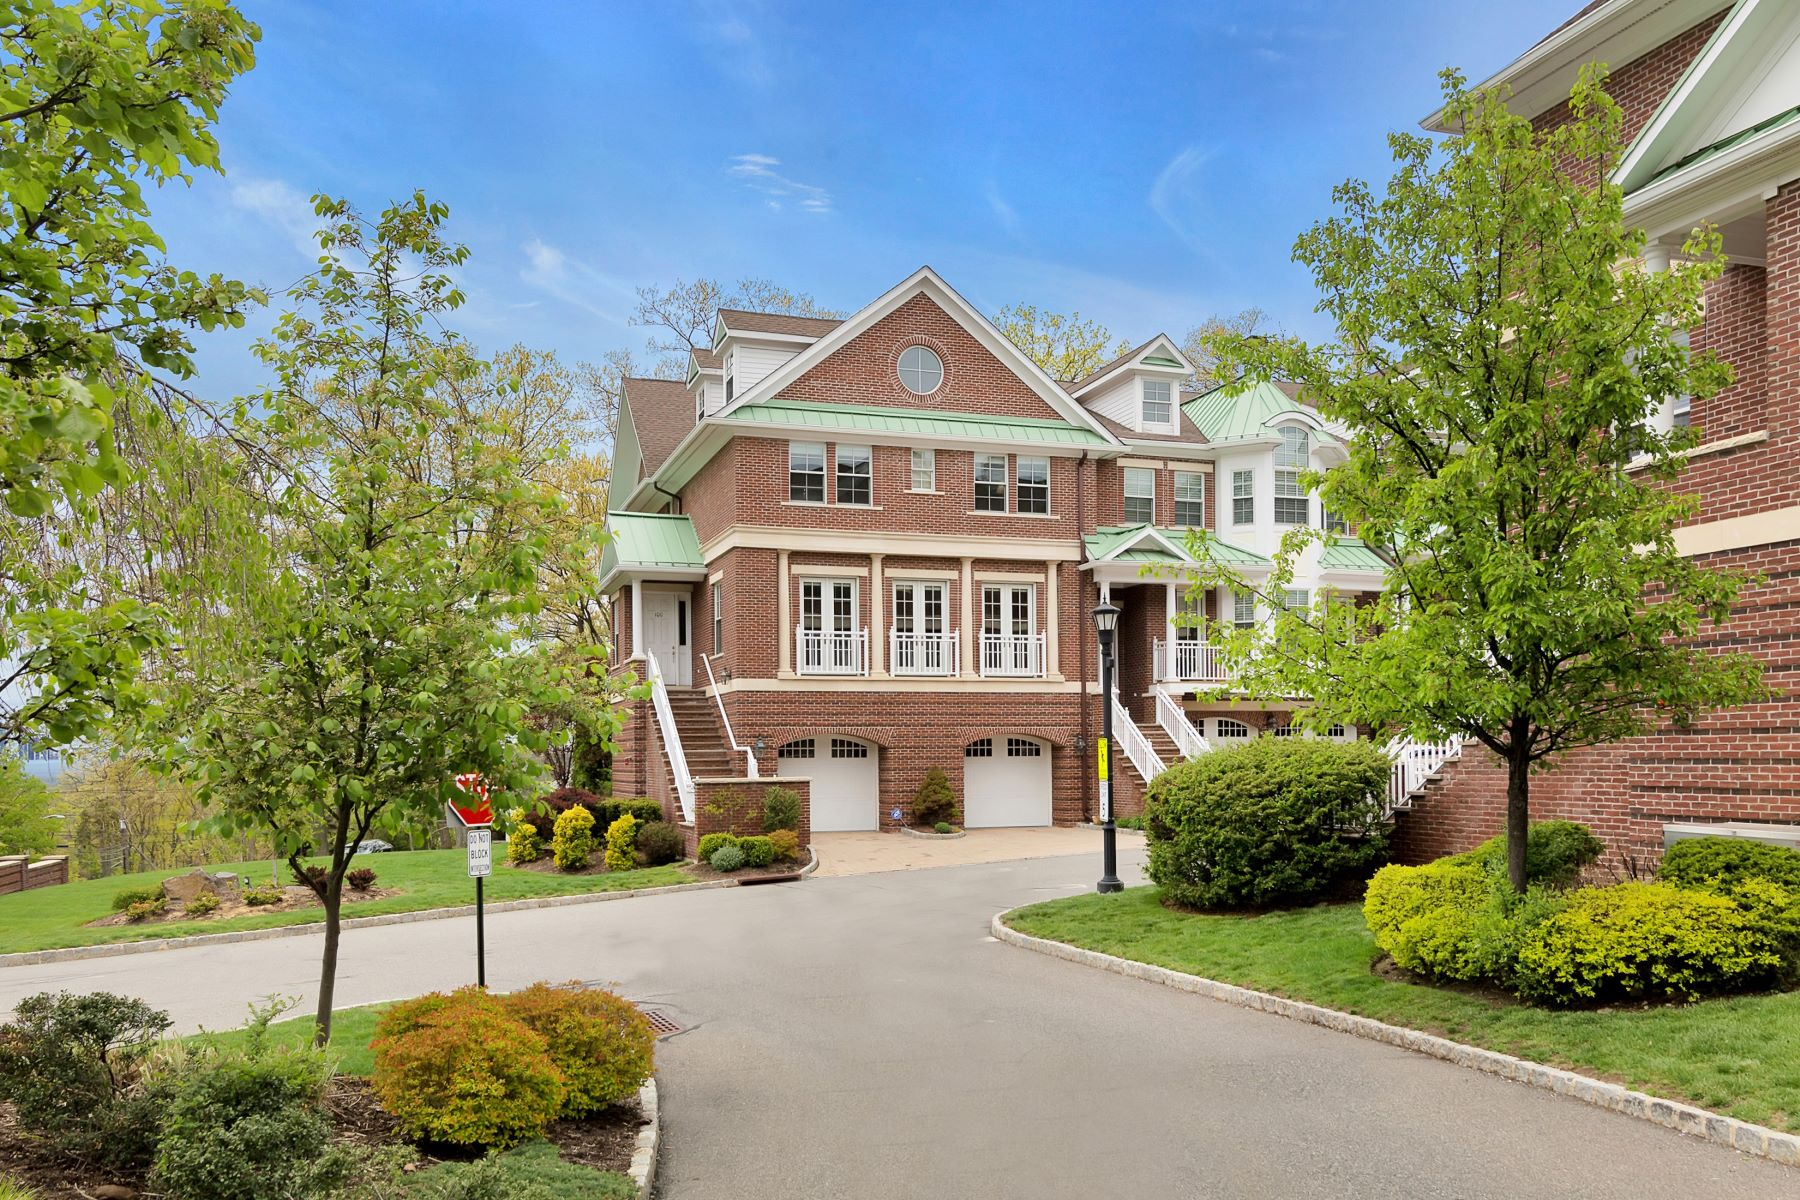 Casa unifamiliar adosada (Townhouse) por un Venta en Luxury Townhouse 100 Heights Lane, Tenafly, Nueva Jersey 07670 Estados Unidos